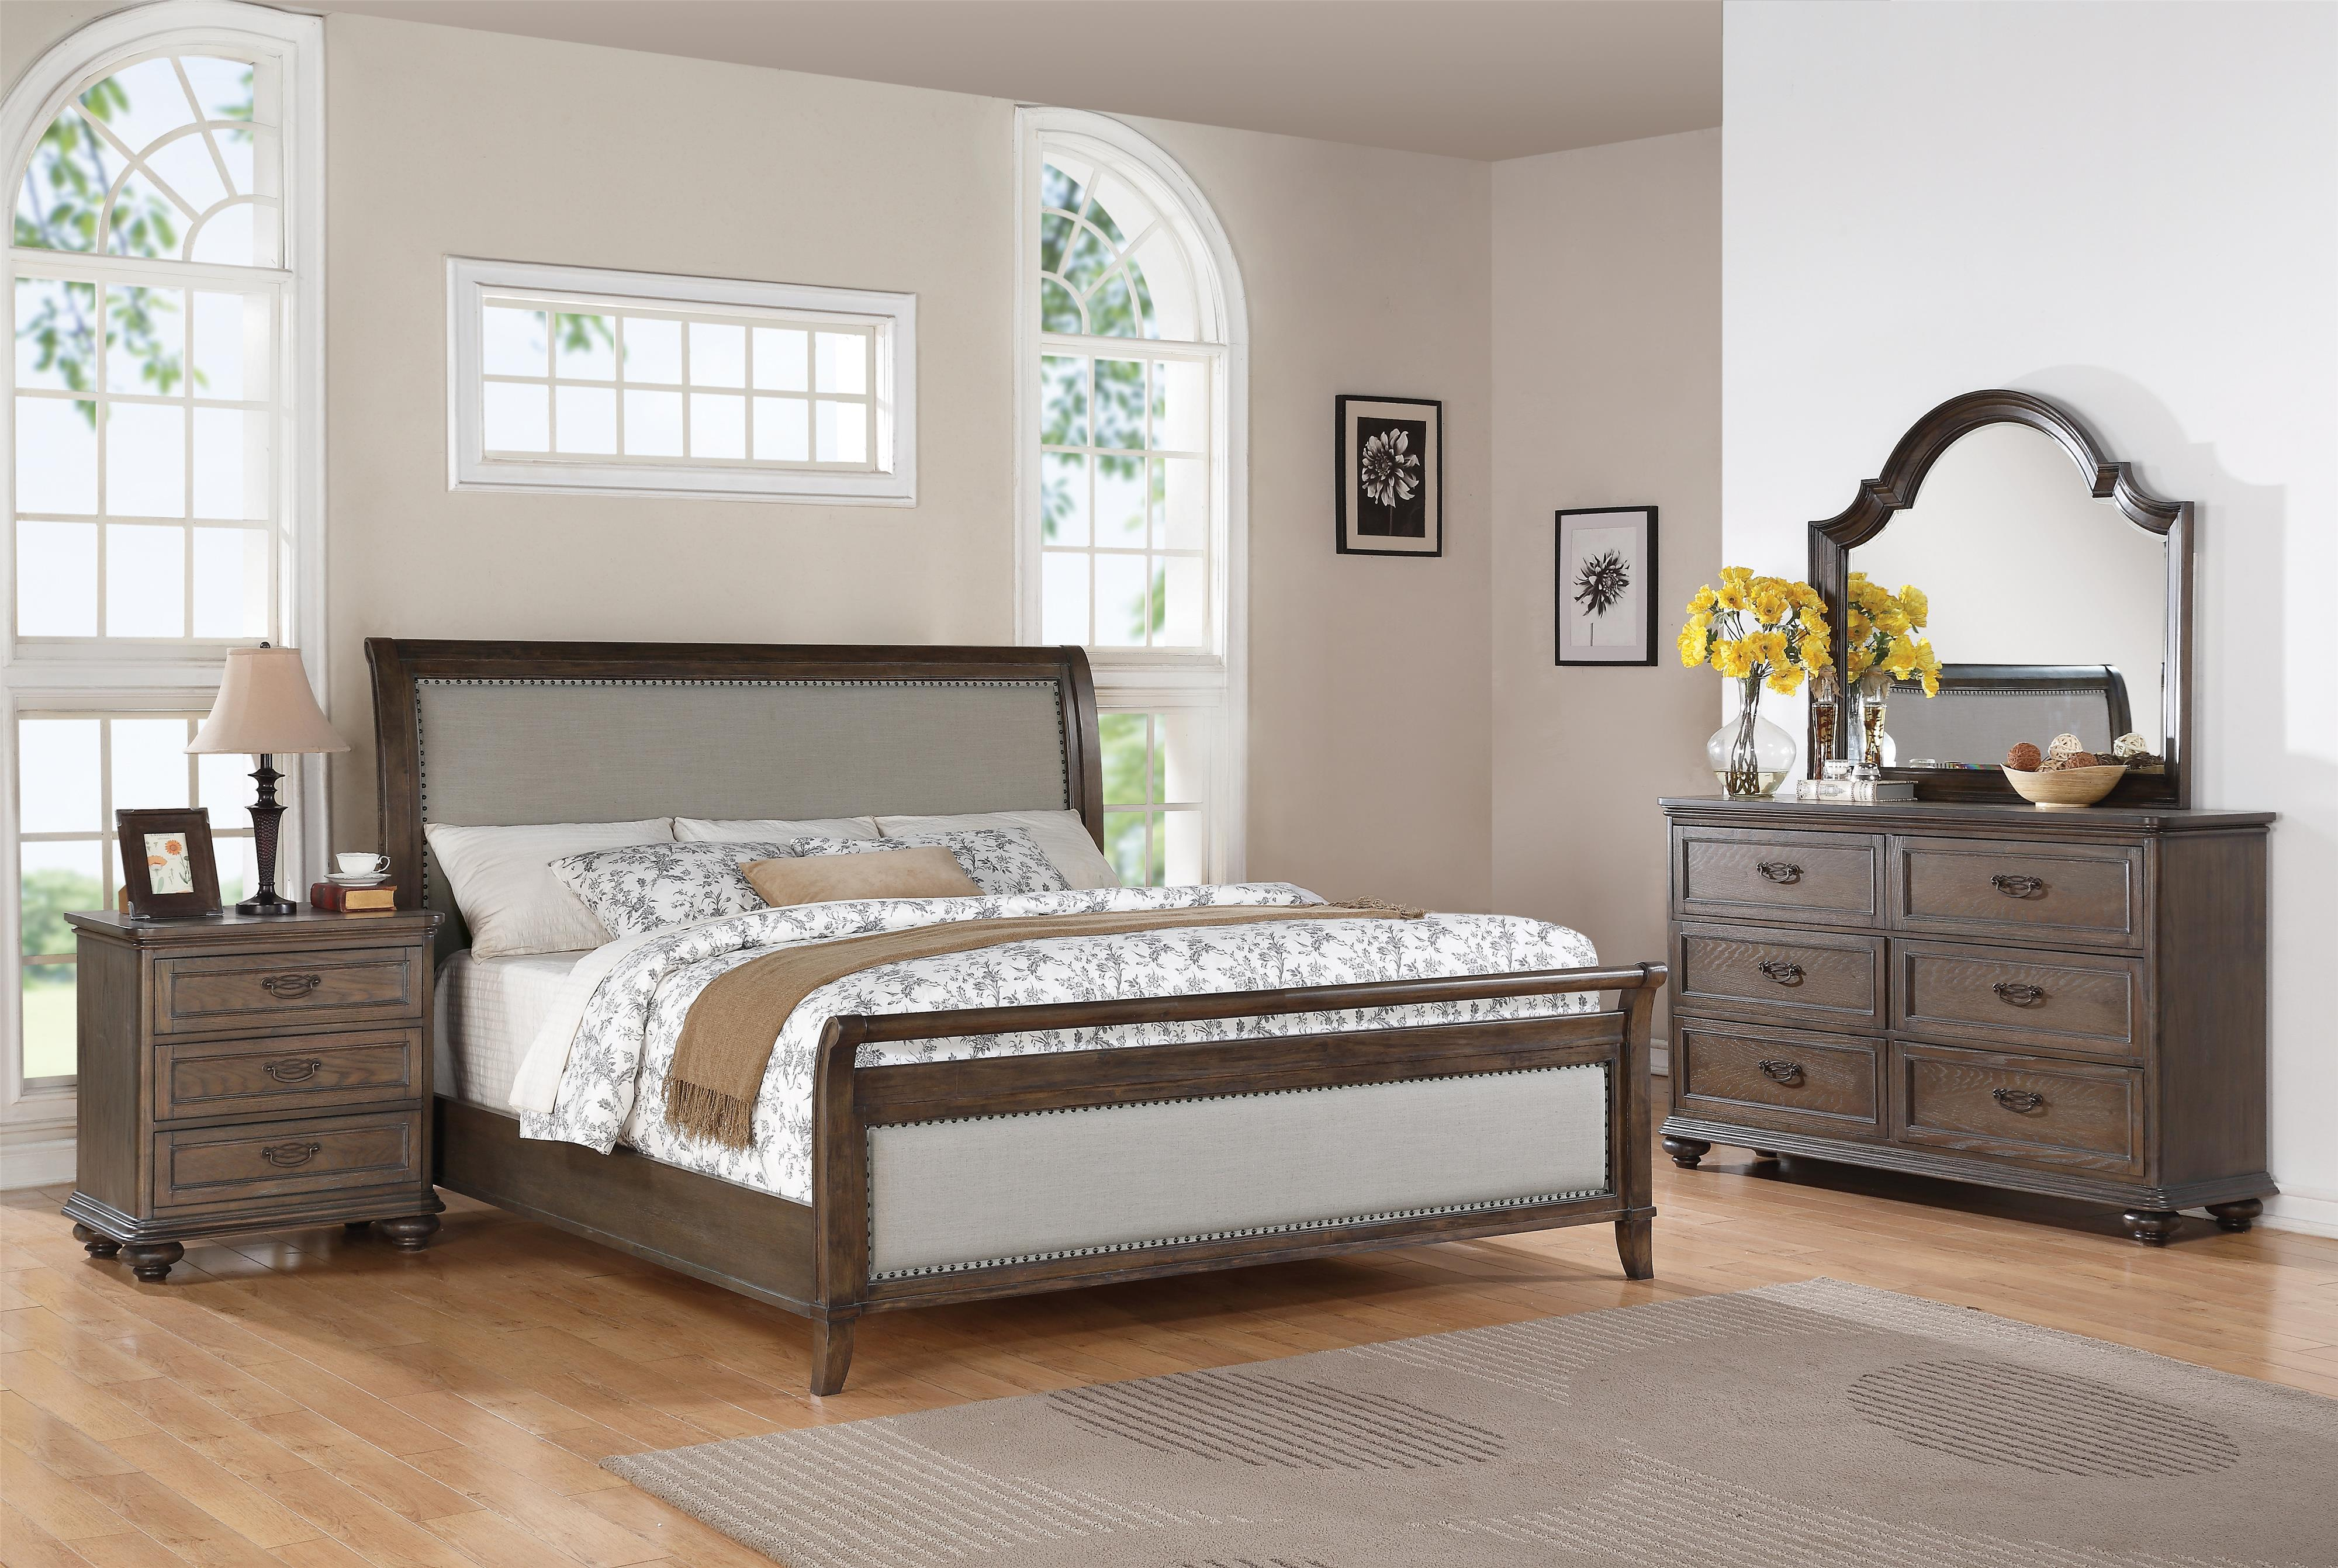 bedroom king panel riverside headboard louver placid footboard p cove with bed and furniture